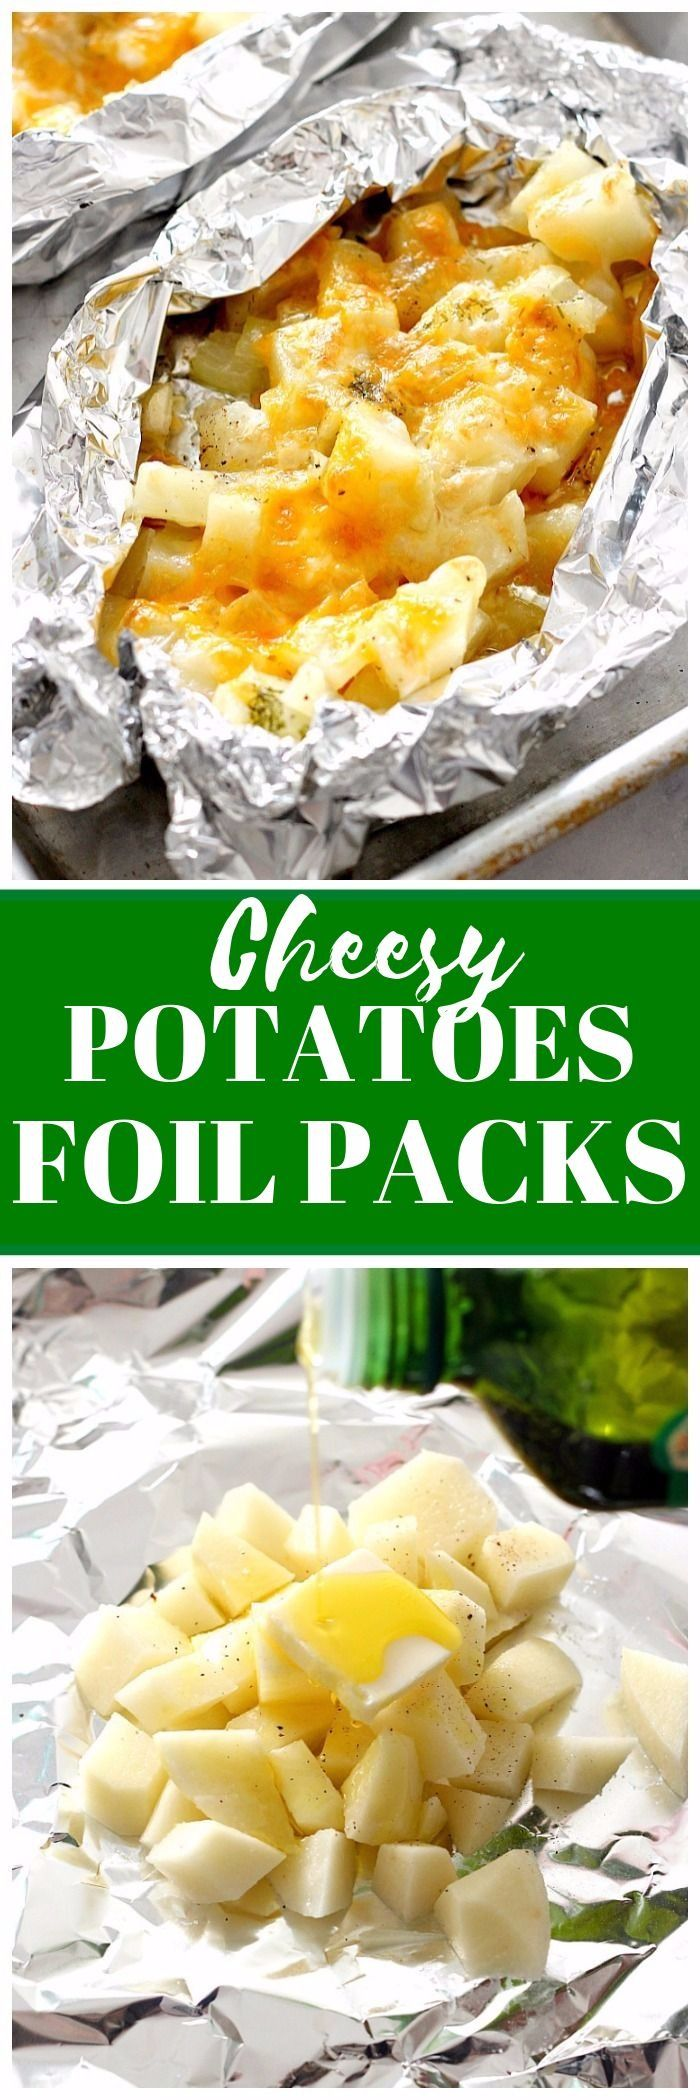 Cheesy Potatoes Foil Packs Recipe - easy and delicious side dish that can be baked in the oven or cooked on the grill! No-mess clean up makes these perfect for a quick dinner!